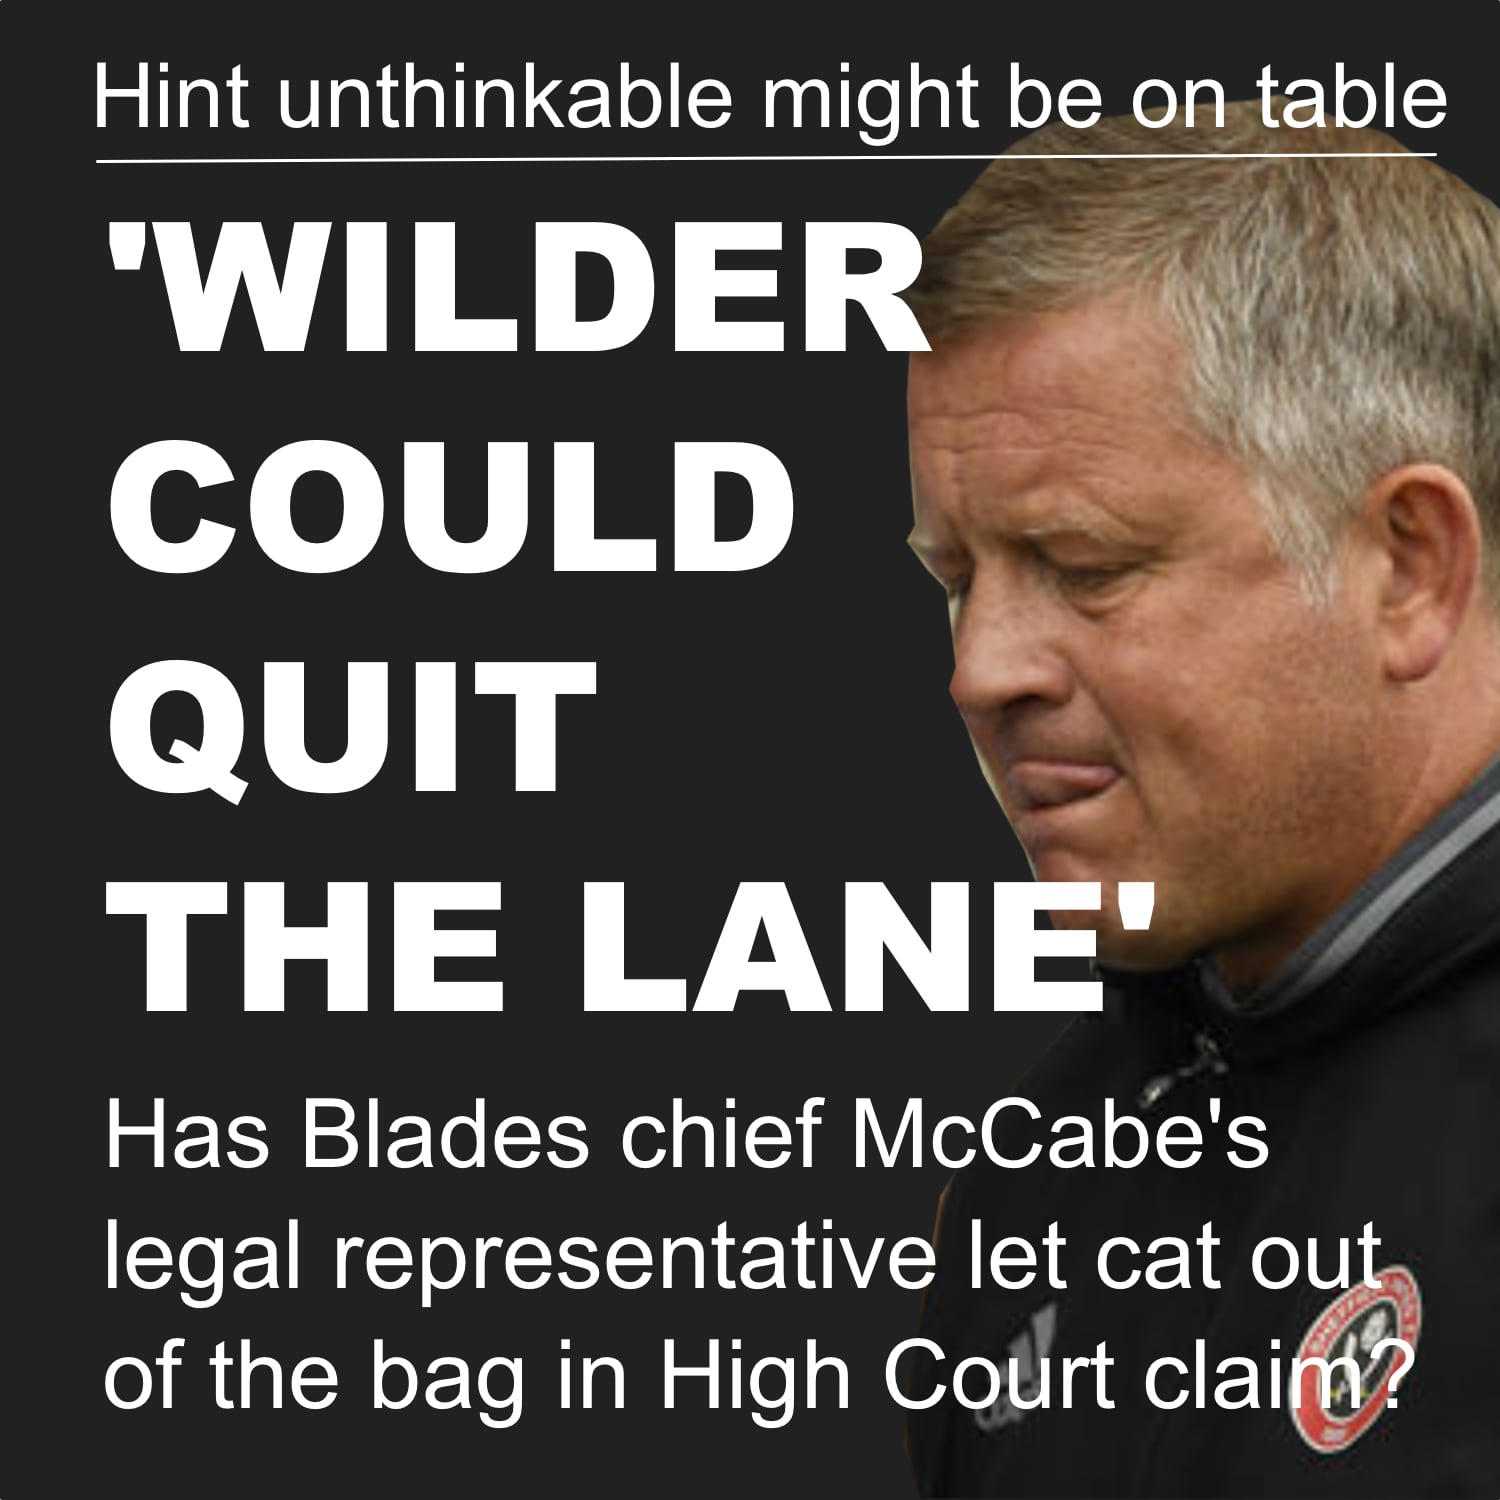 High Court claim boss Chris Wilder could quit Sheffield United if Kevin McCabe loses battle to win full control at Bramall Lane